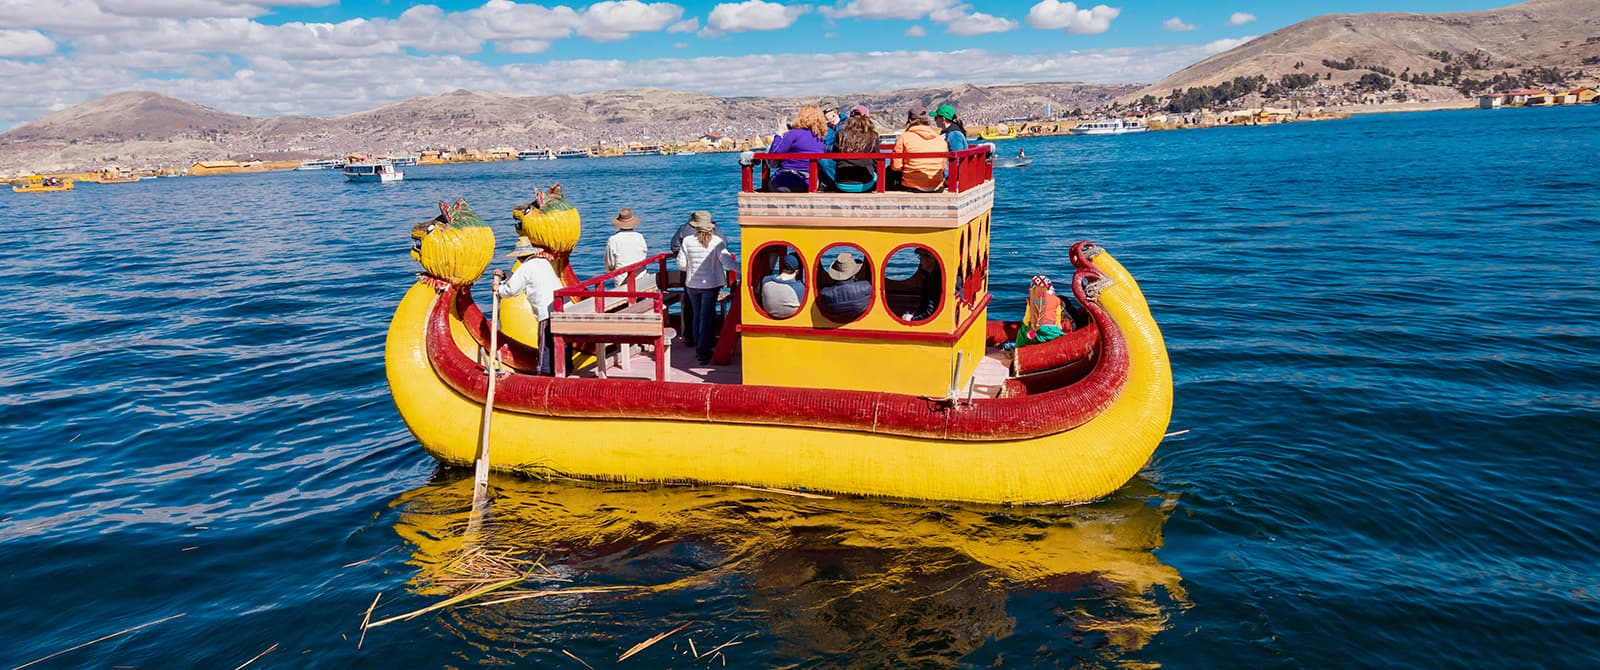 the titicaca lake tour all included